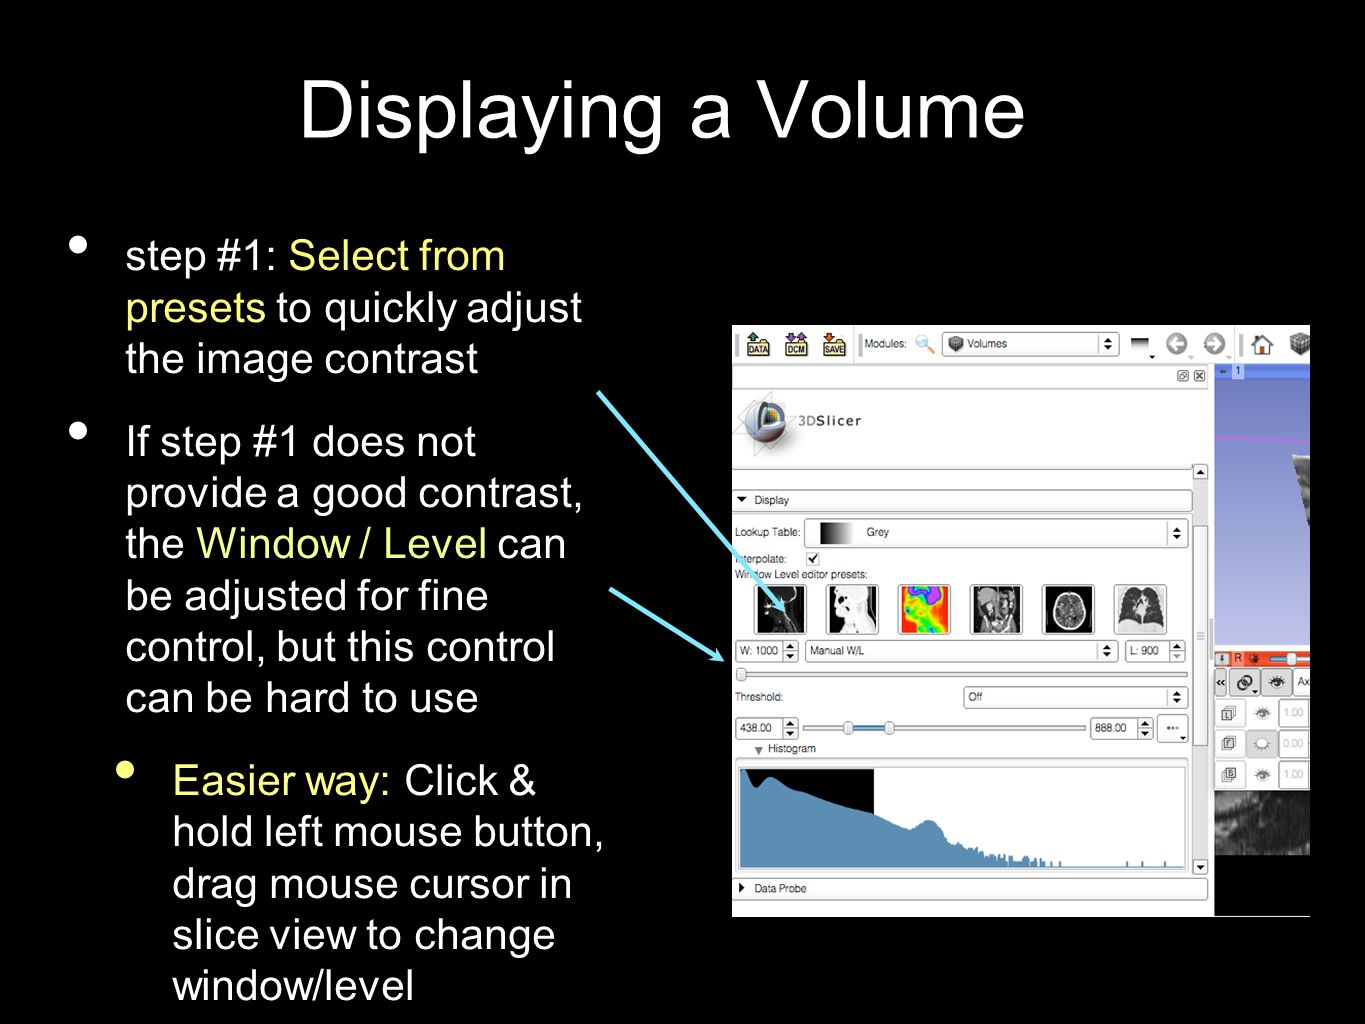 Displaying a Volume step #1: Select from presets to quickly adjust the image contrast If step #1 does not provide a good contrast, the Window / Level can be adjusted for fine control, but this control can be hard to use Easier way: Click & hold left mouse button, drag mouse cursor in slice view to change window/level